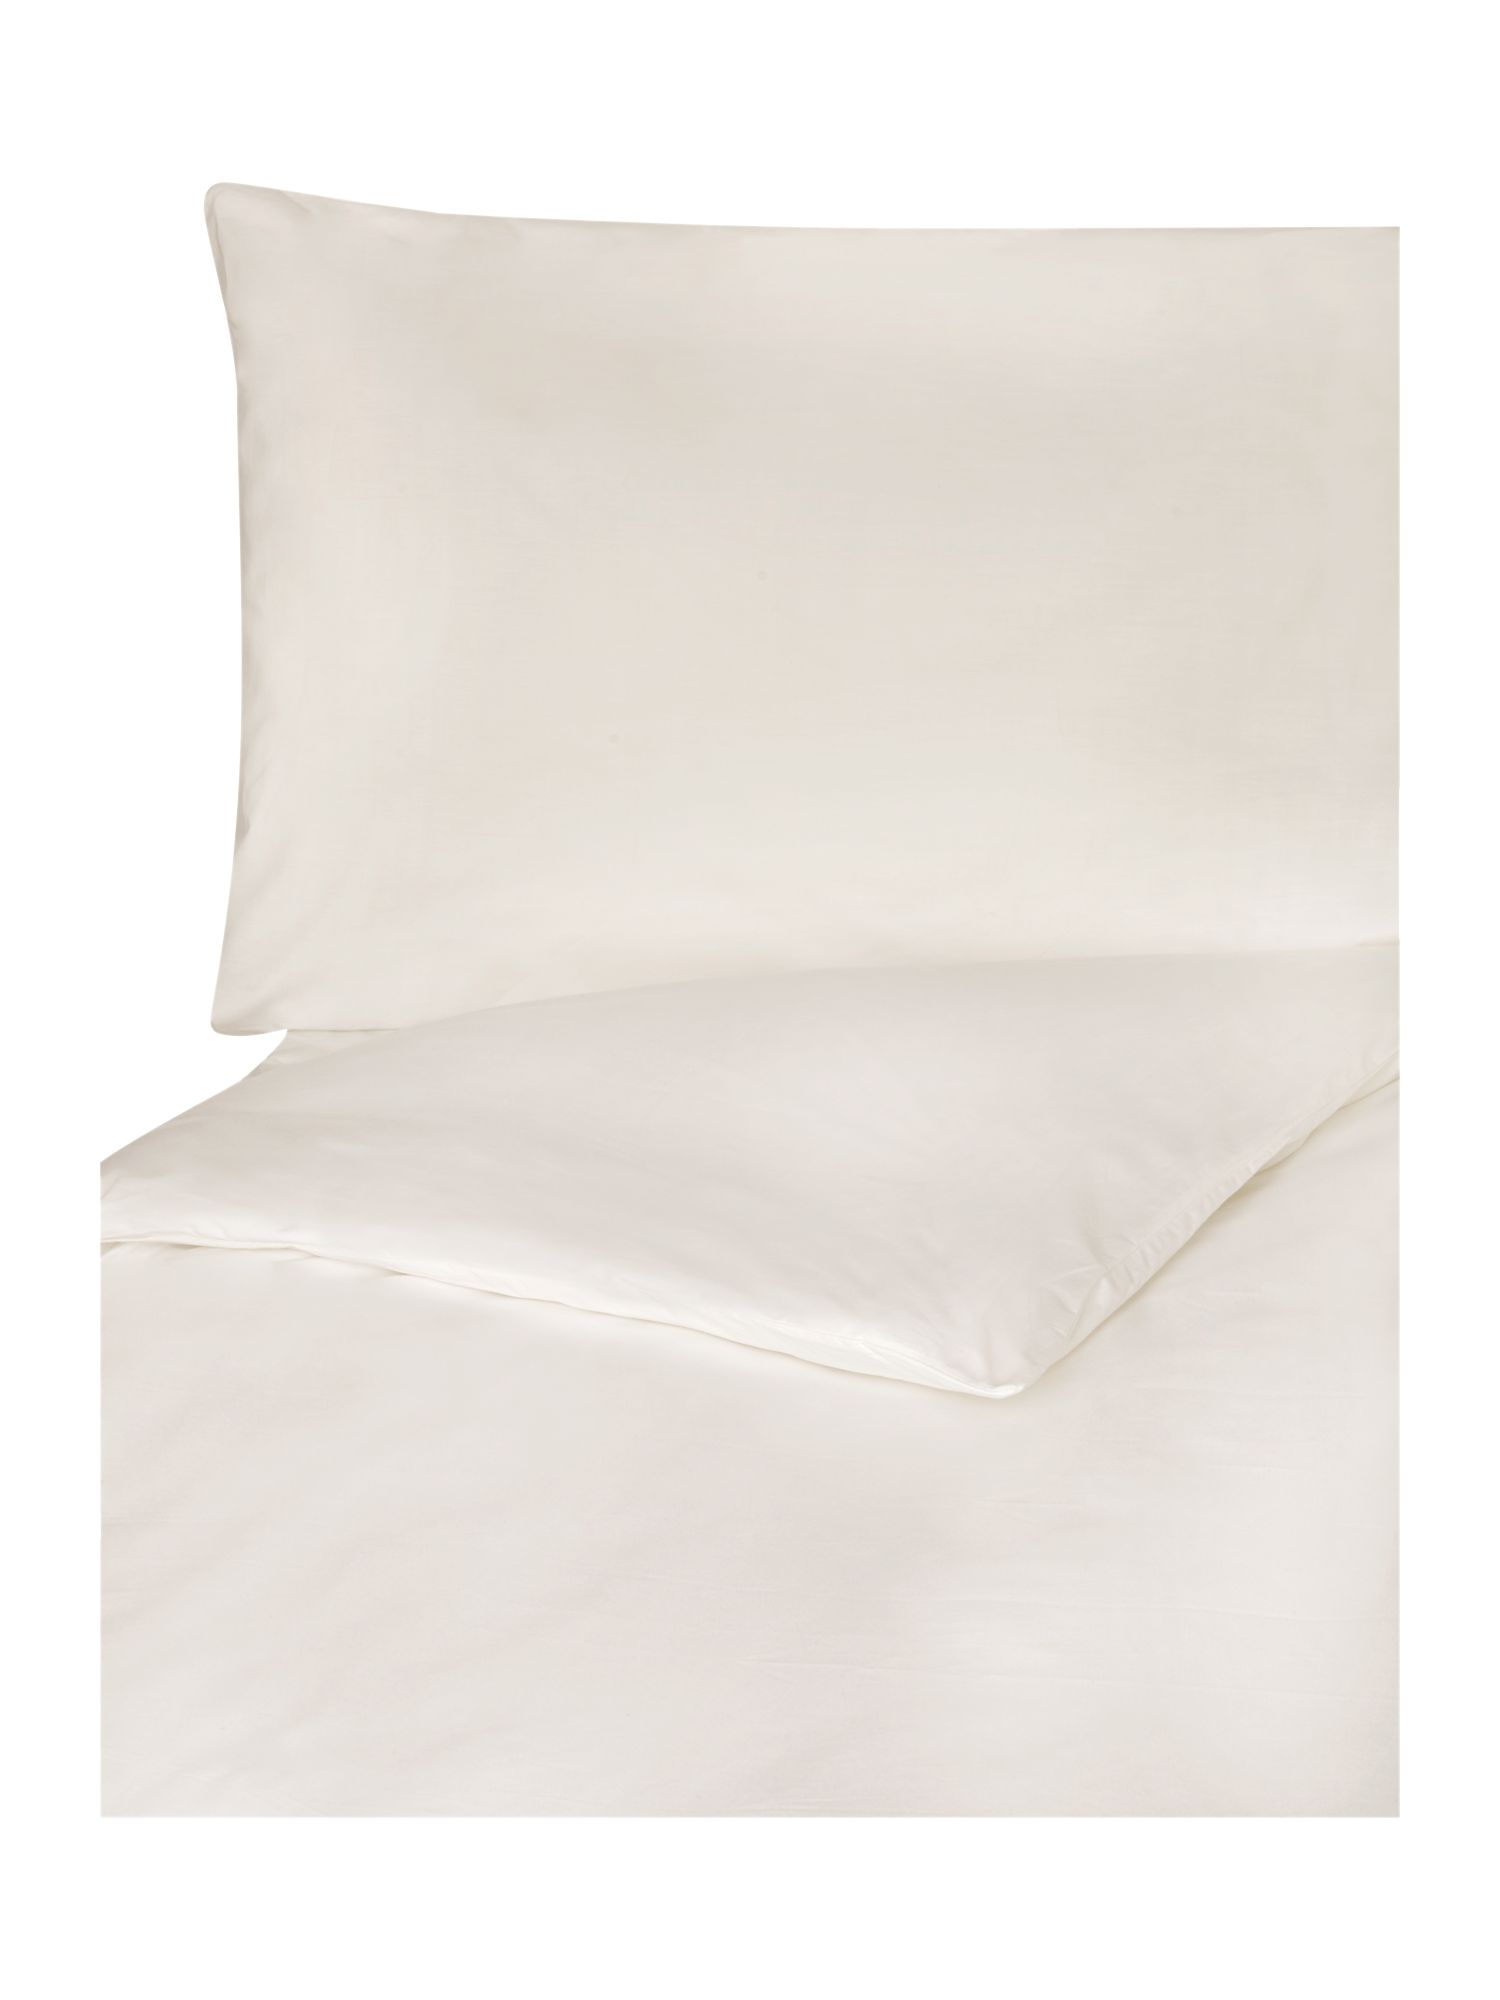 Egyptian ivory 200 thread count double flat sheet